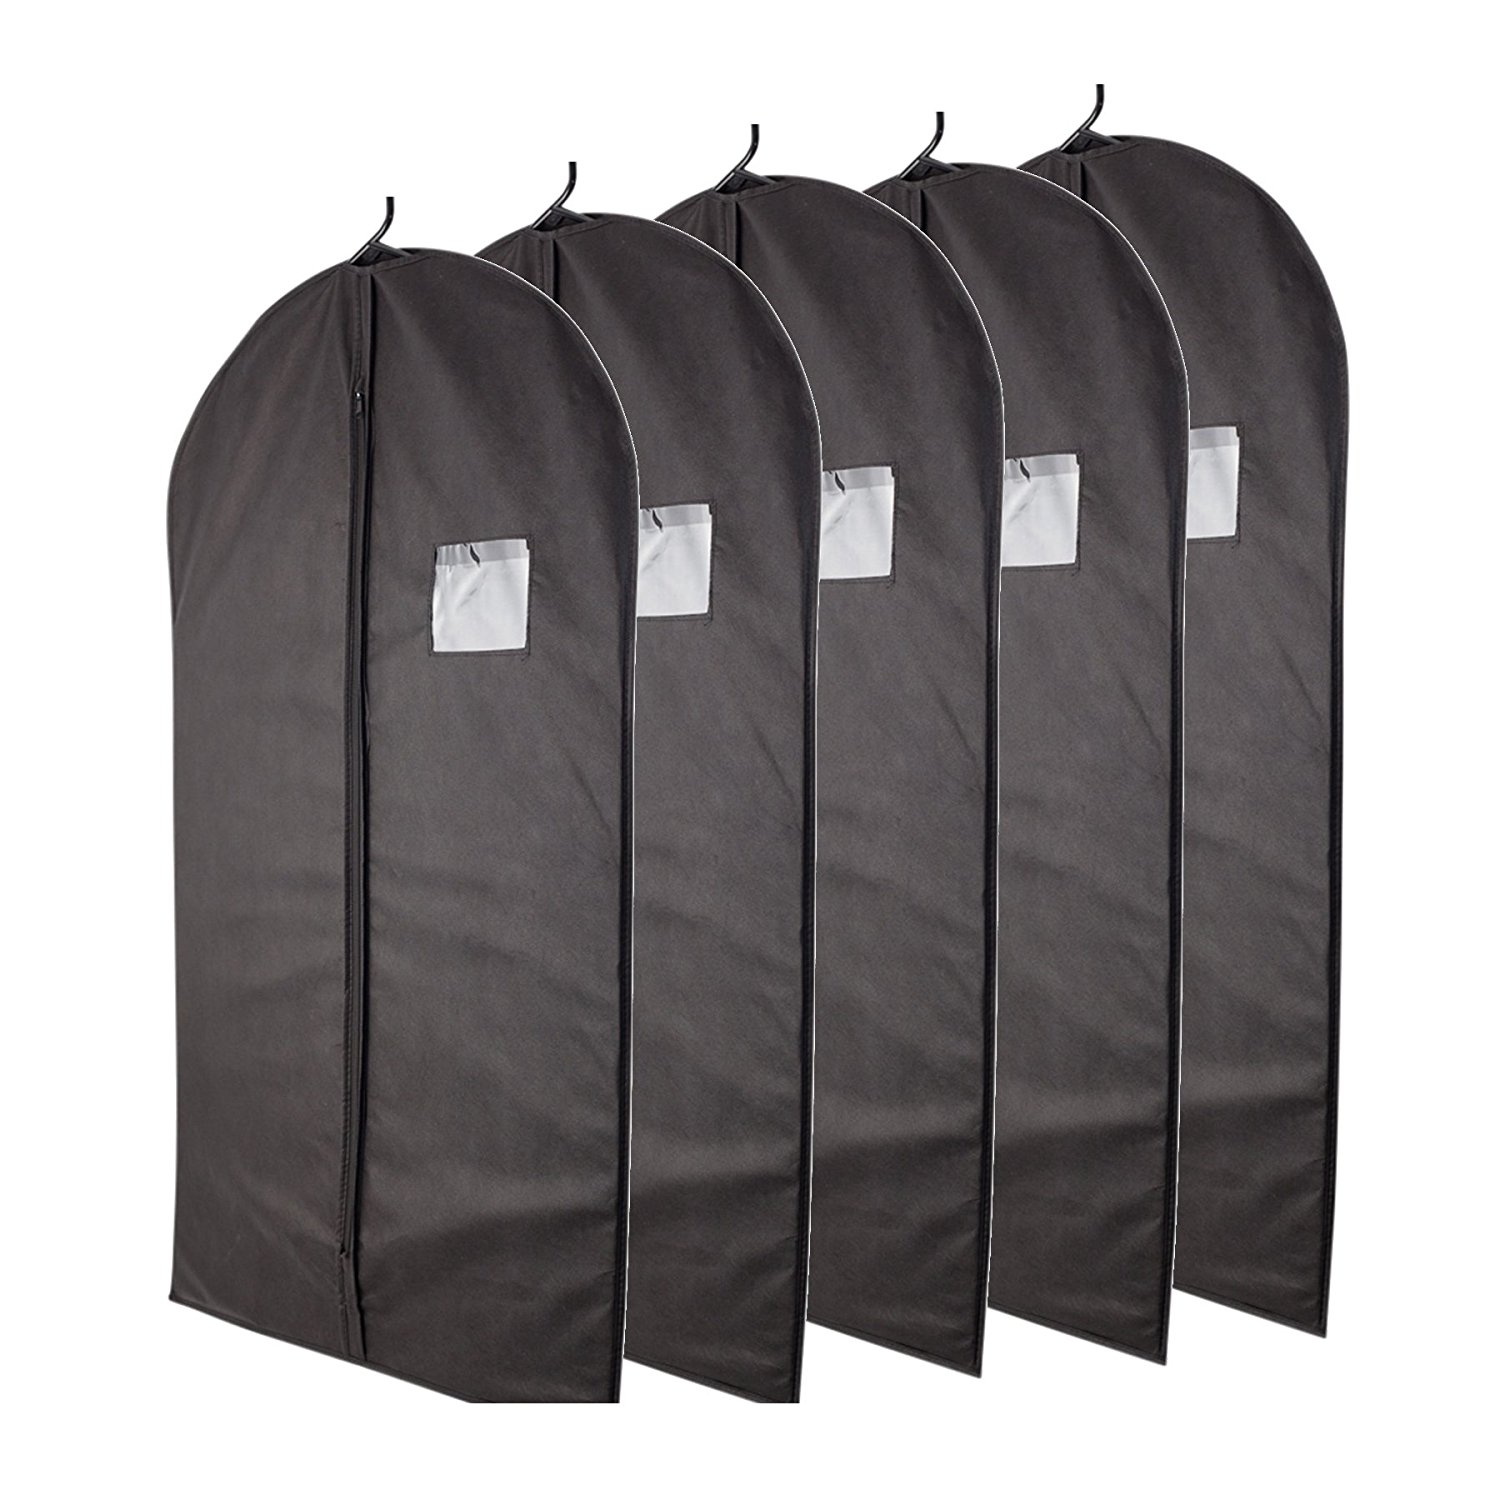 fancy non woven mens suit Travel Dust Cover Foldable garment bag with pockets